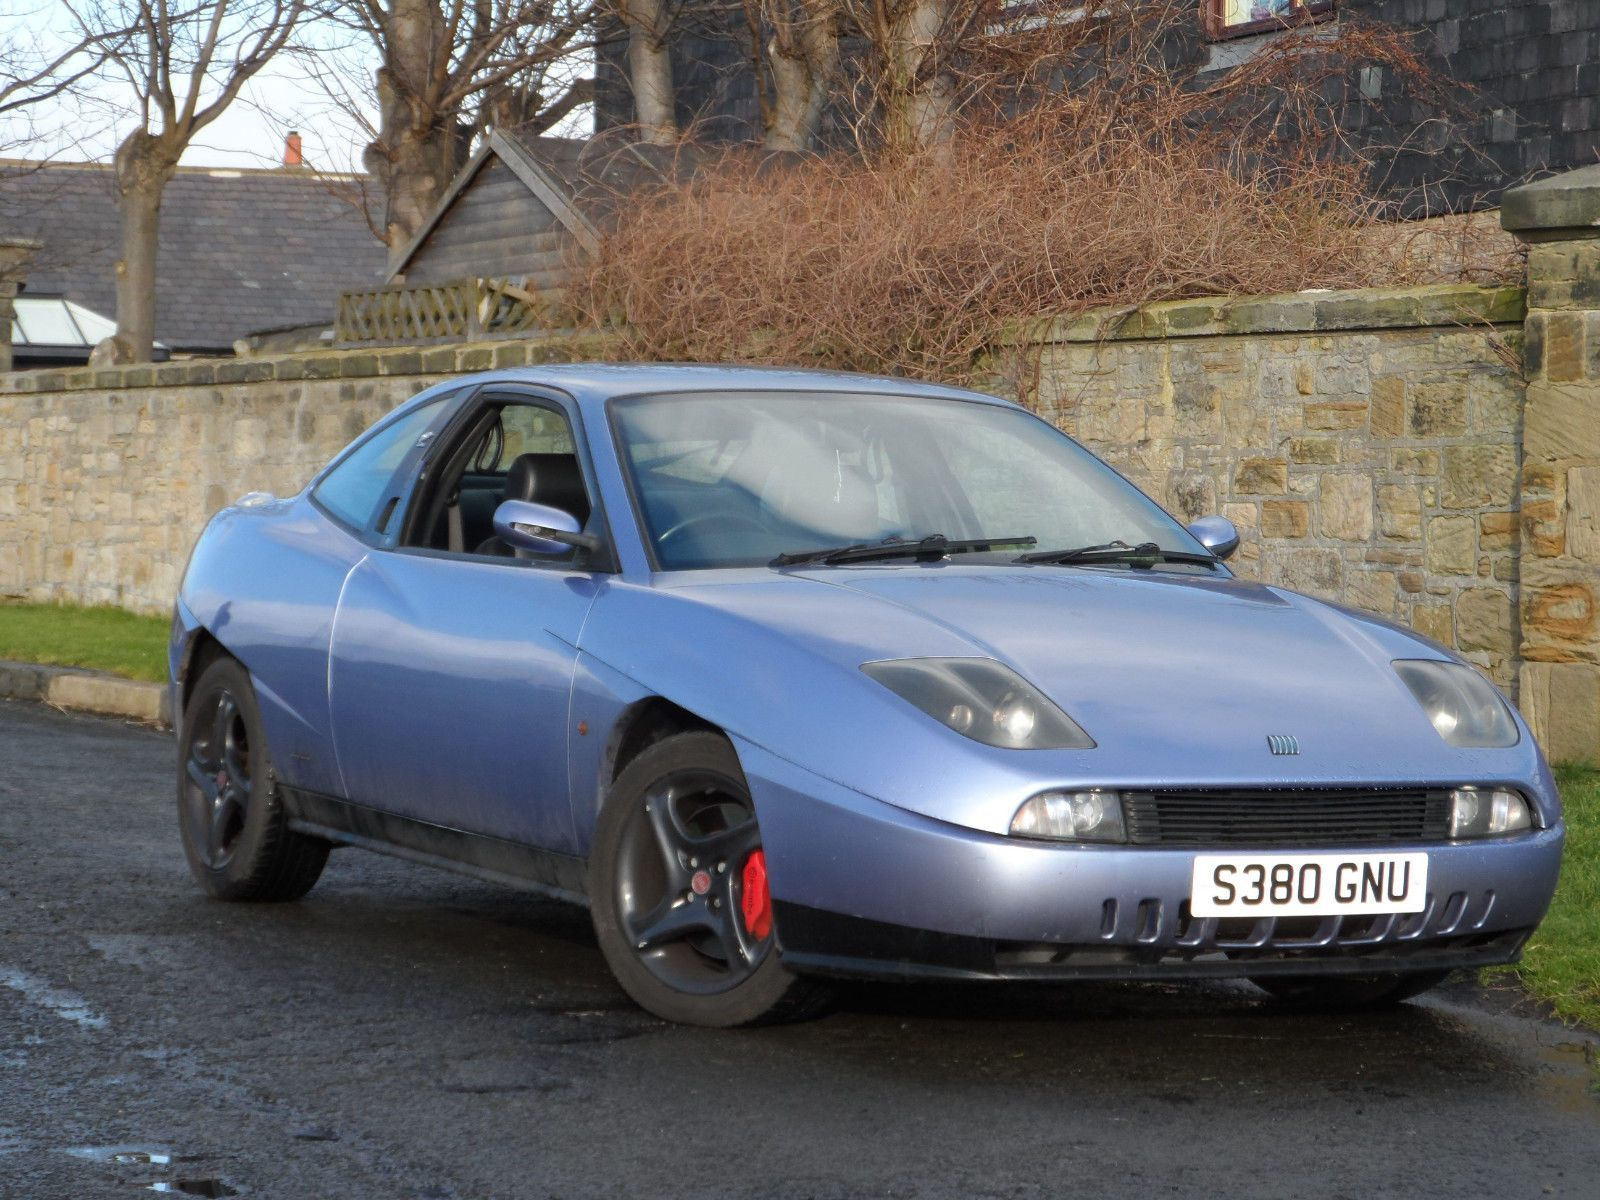 Check Out This Classic Turbo 1998 Fiat Coupe 20v Turbo 20vt Portofino Blue Fiat Coupe Fiat Coupe